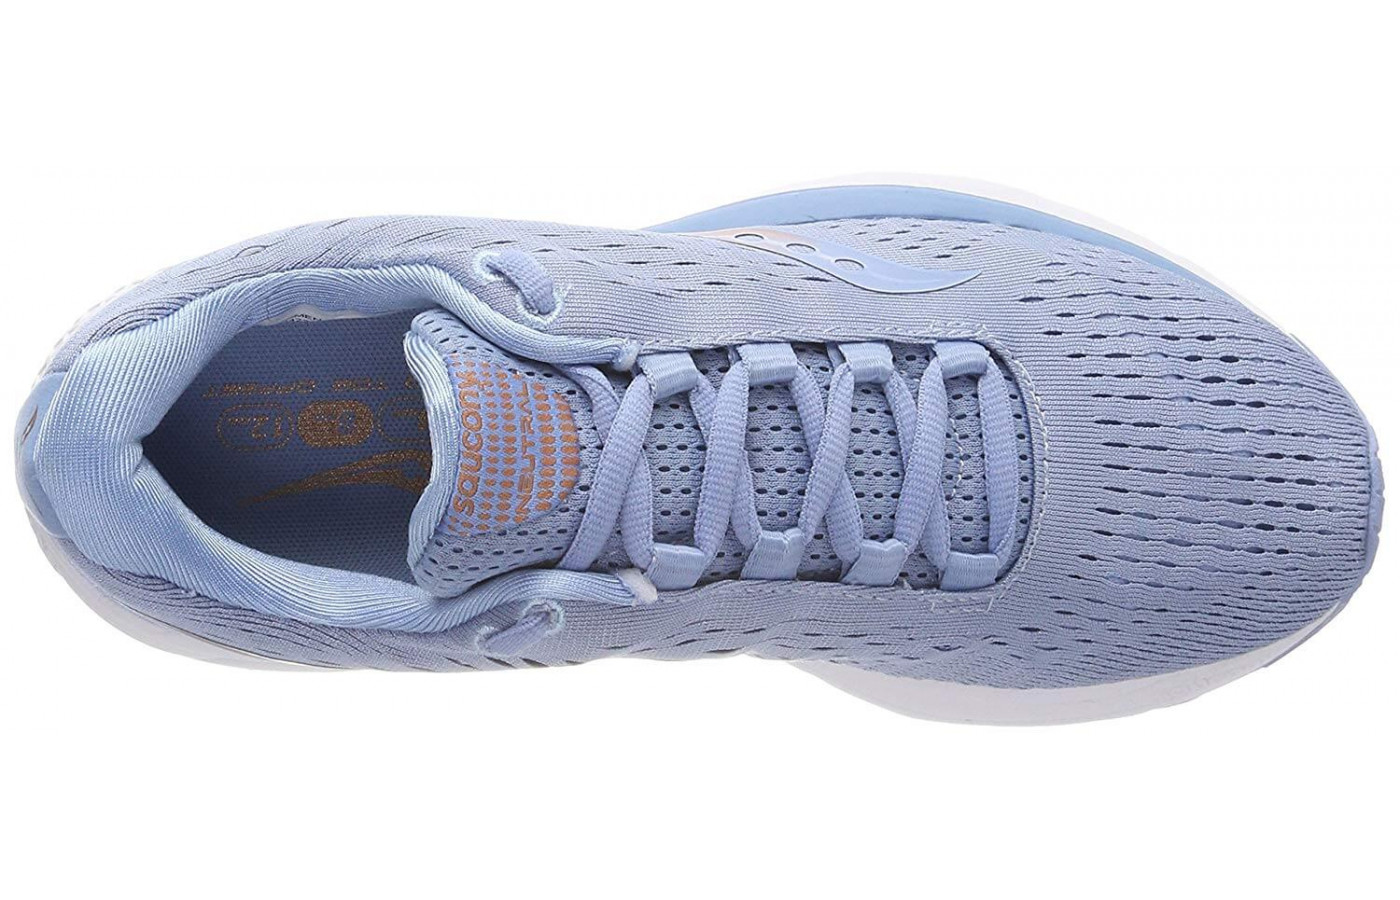 The Jazz 20 features an engineered mesh upper for greater comfort and breathability